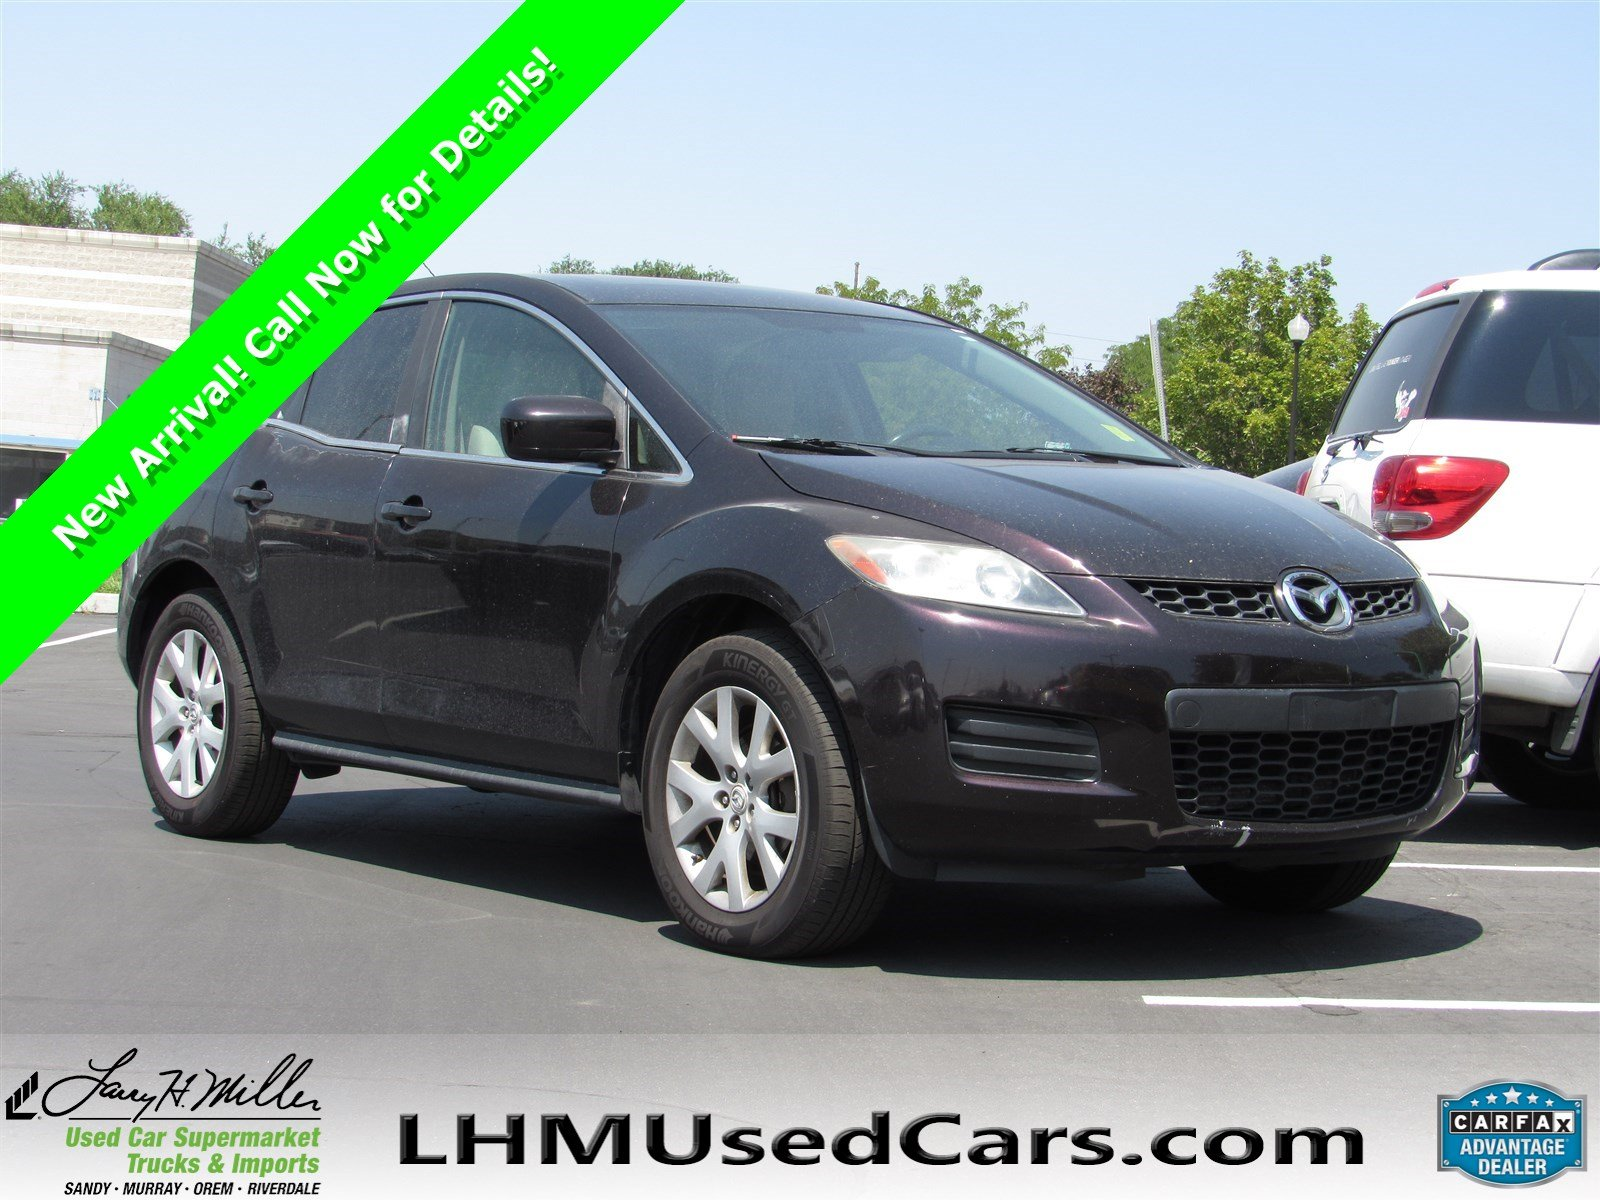 Exceptional Pre Owned 2007 Mazda CX 7 Sport